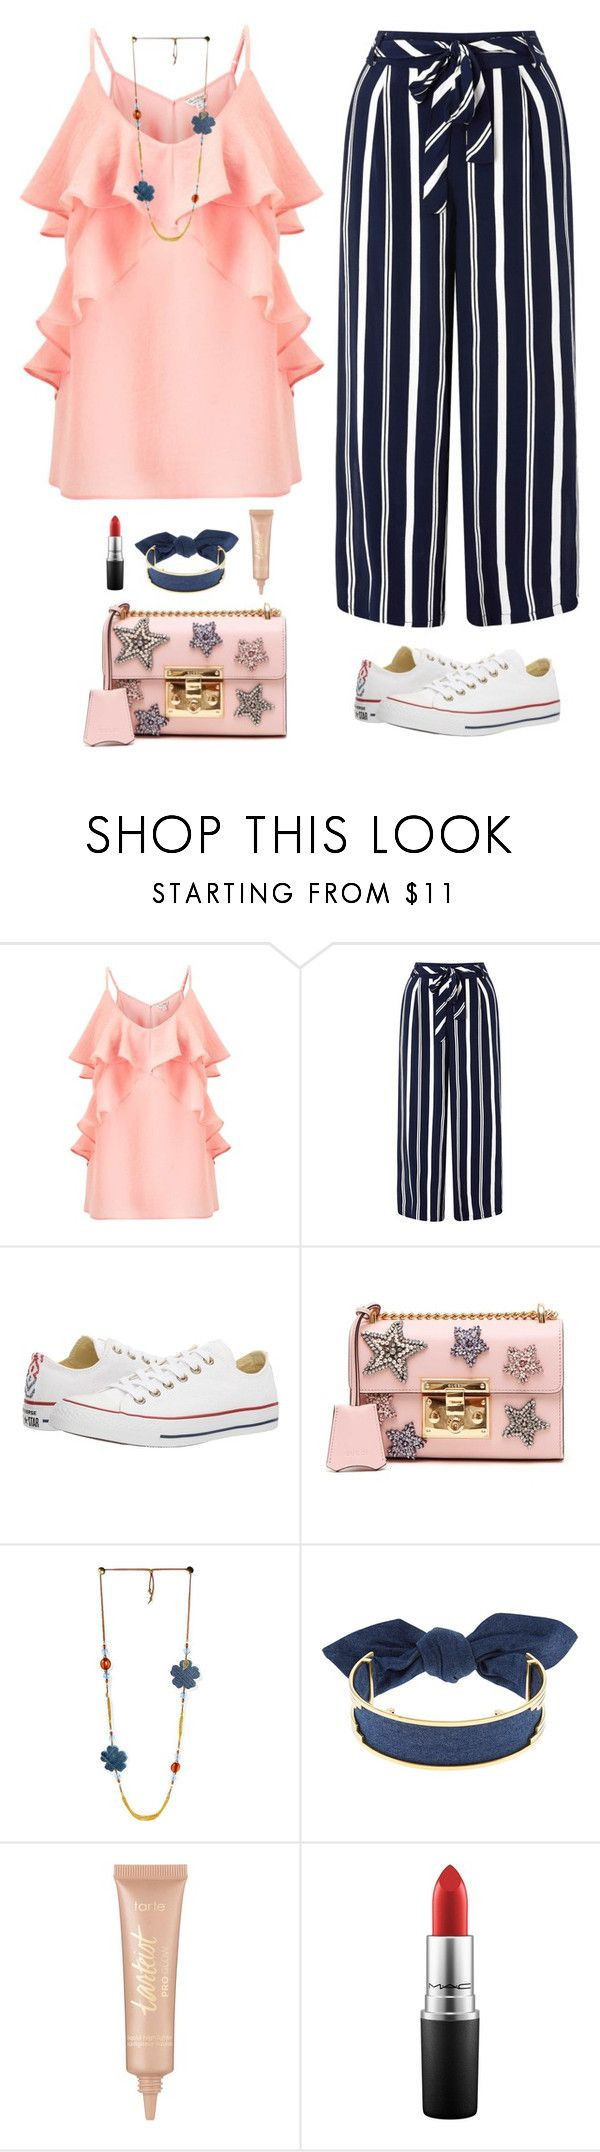 """""""Stacy's mom"""" by xoxomuty ❤ liked on Polyvore featuring Miss Selfridge, Monsoon, Converse, Gucci, Monica Sordo, tarte, MAC Cosmetics, WorkWear and polyvoreOOTD"""